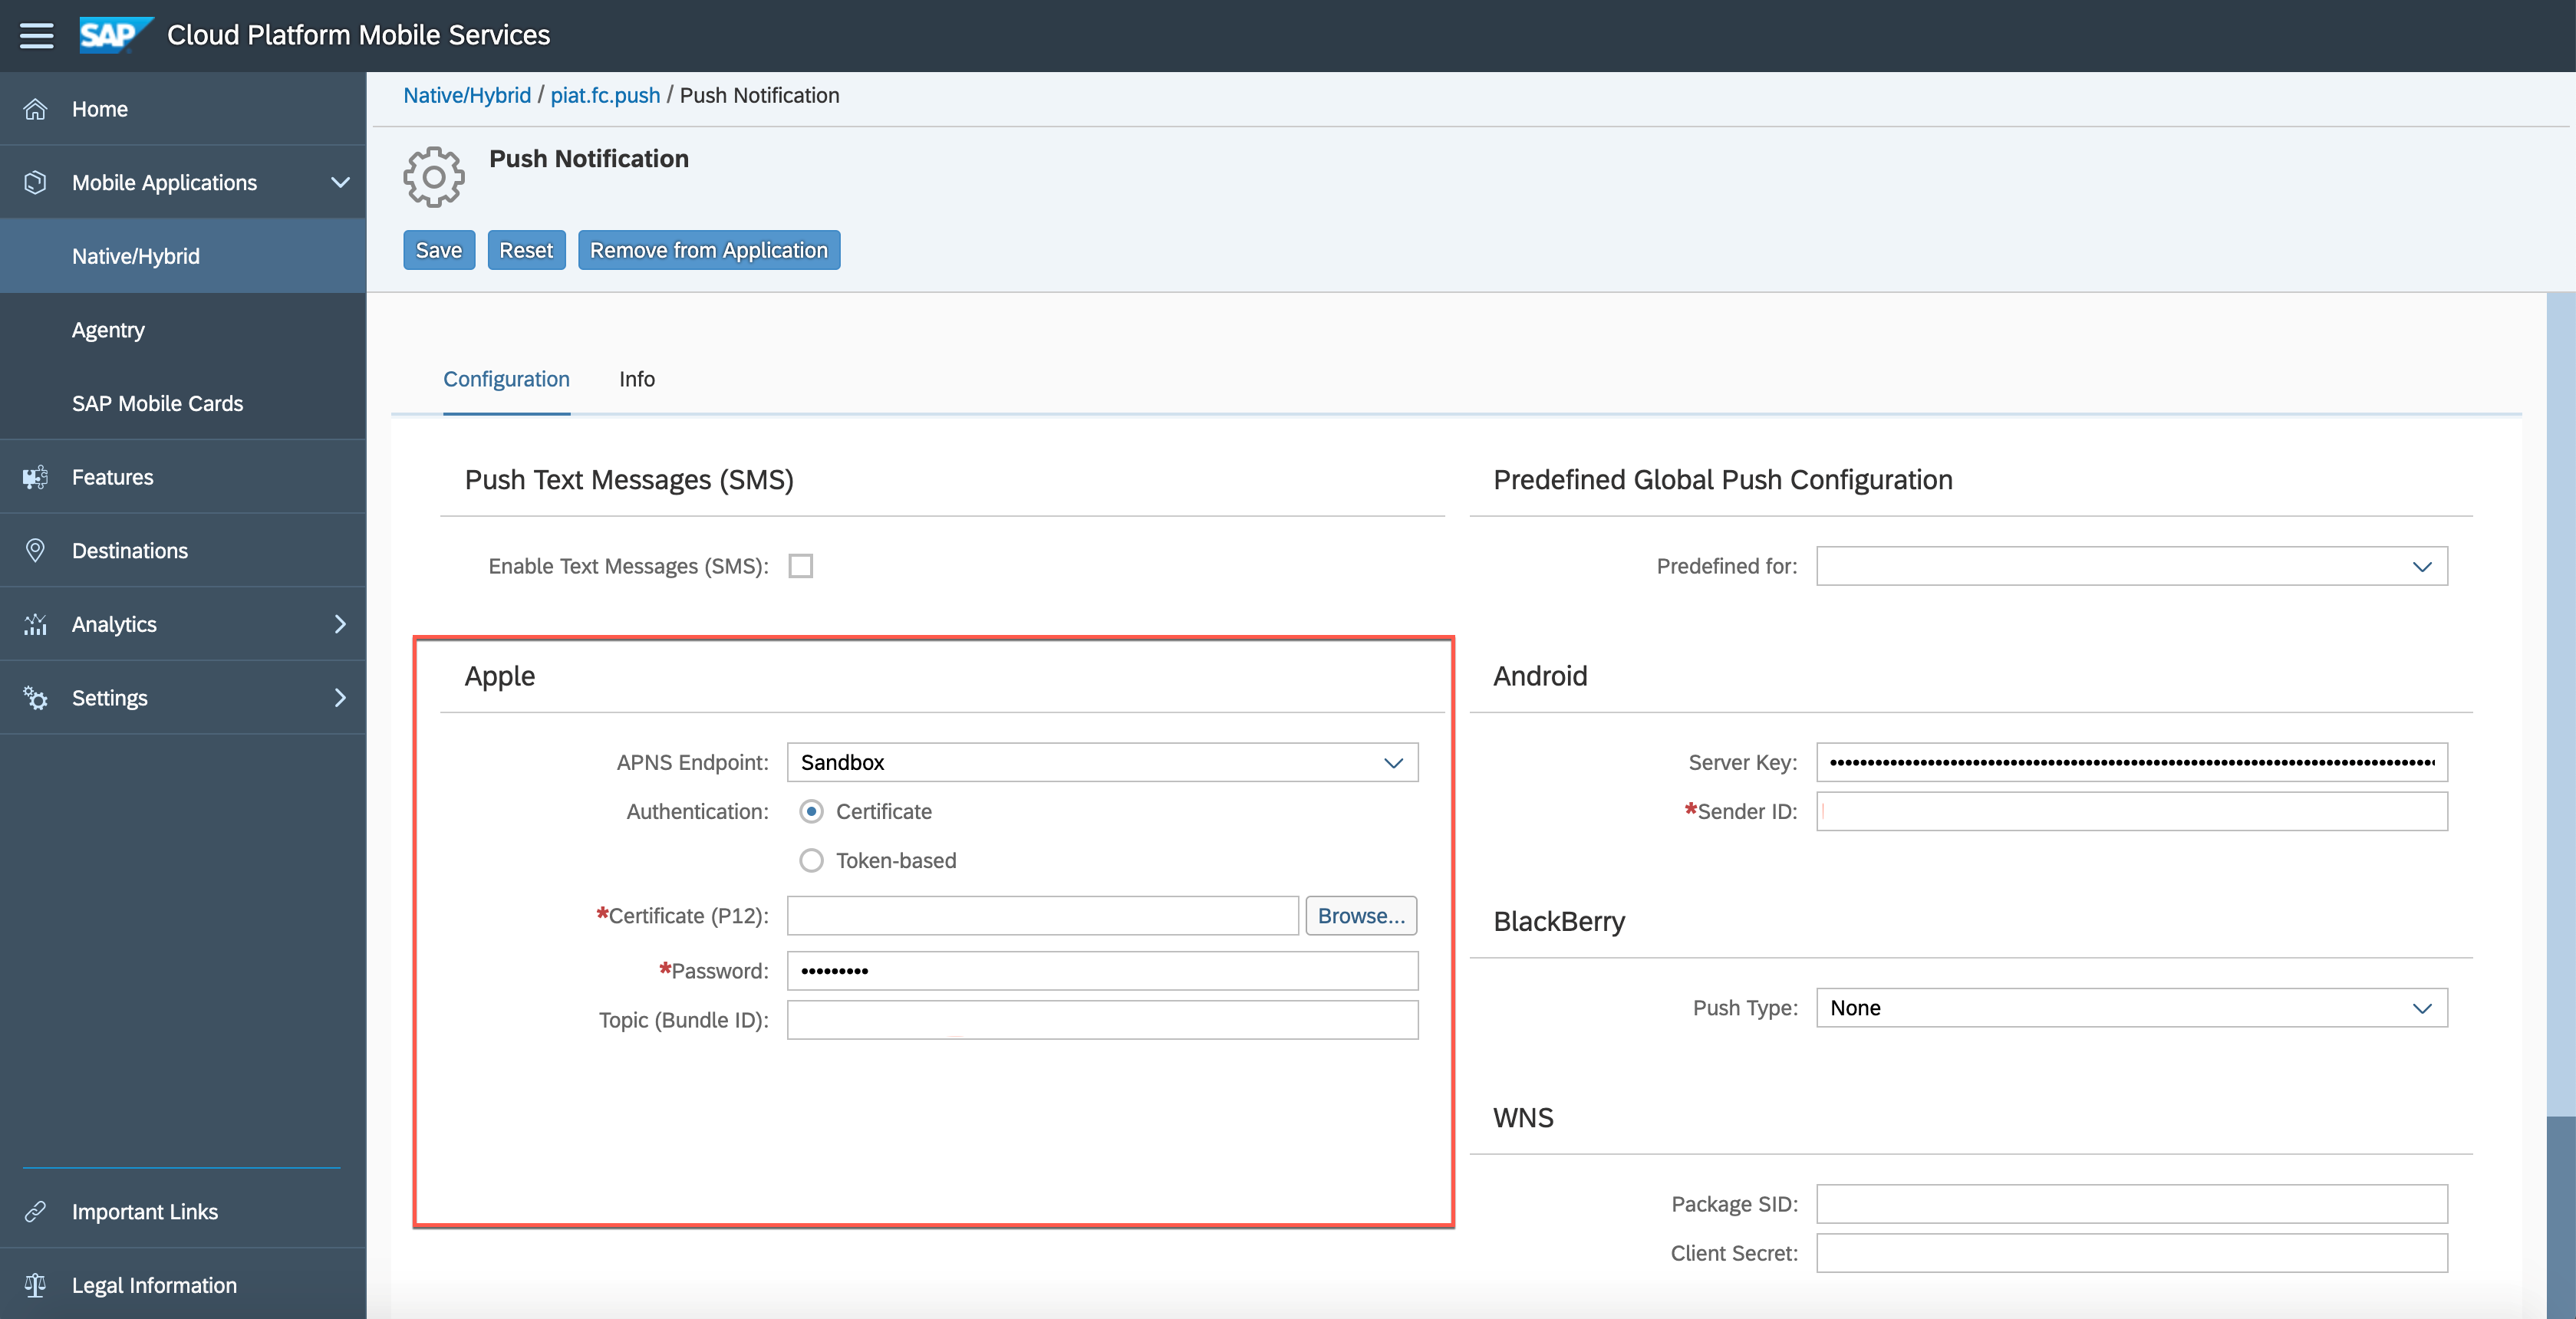 How to config and consume Push Notification from SAP Mobile